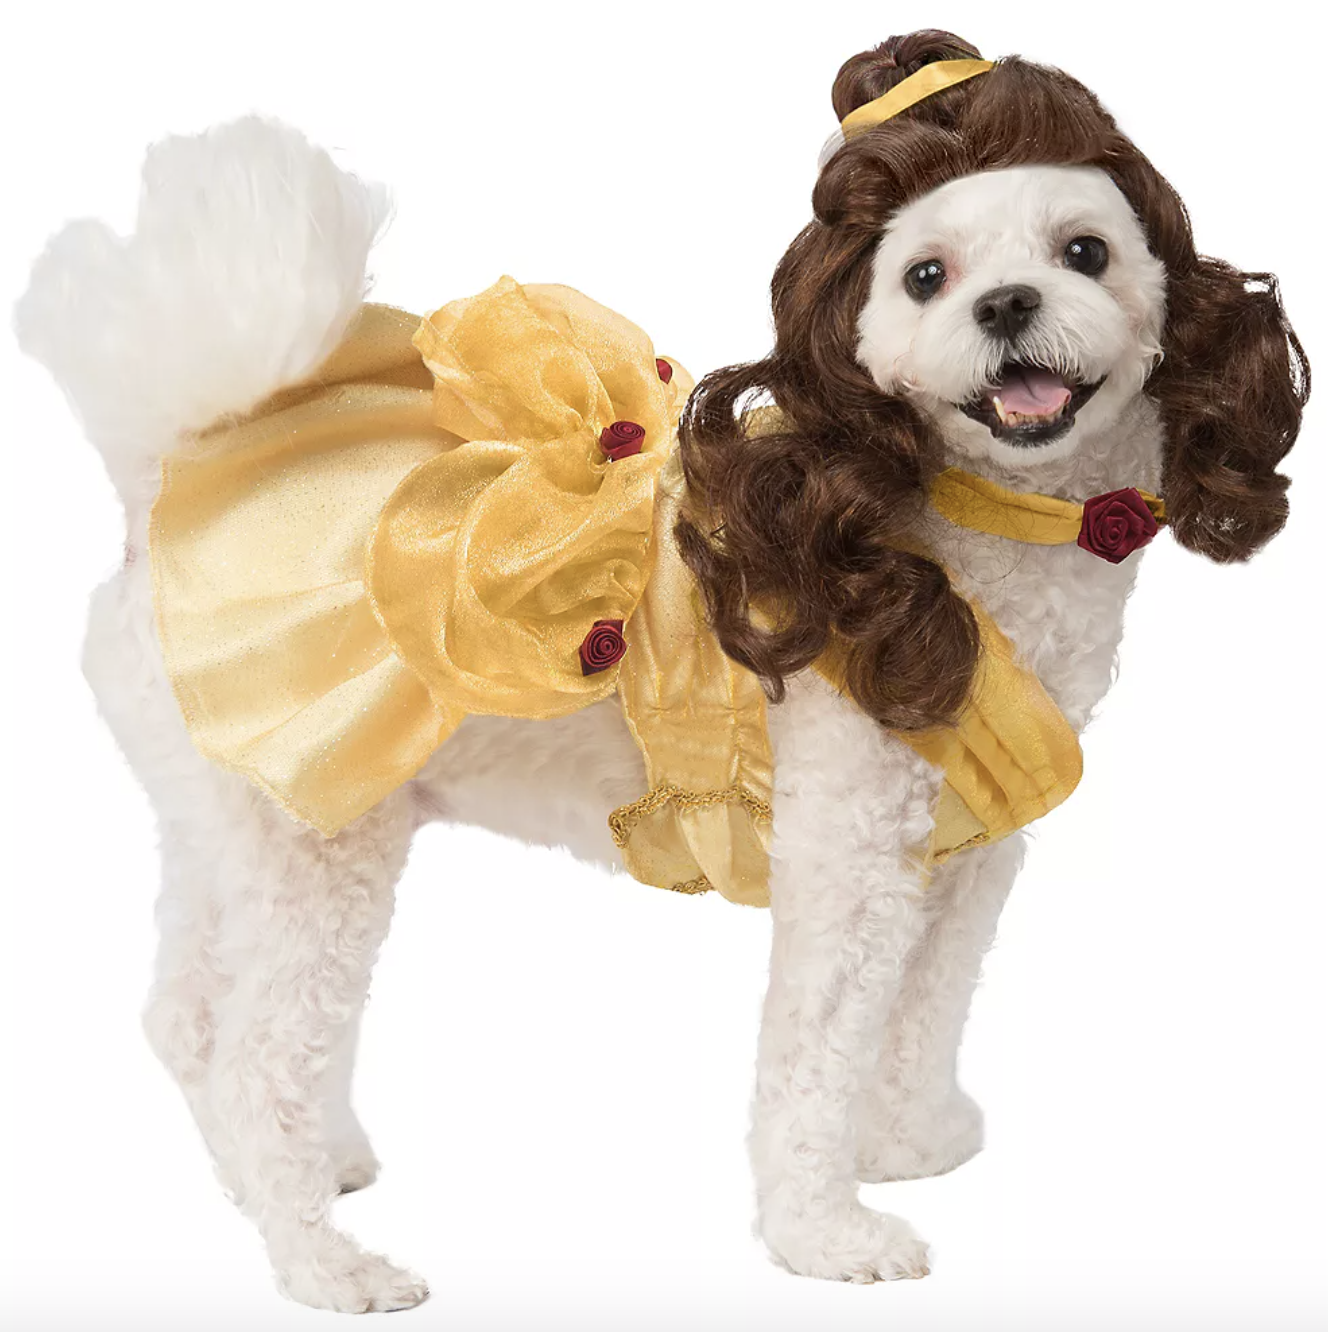 a small white dog wearing a yellow ball gown and brown wig so they look like belle from beauty and the beast